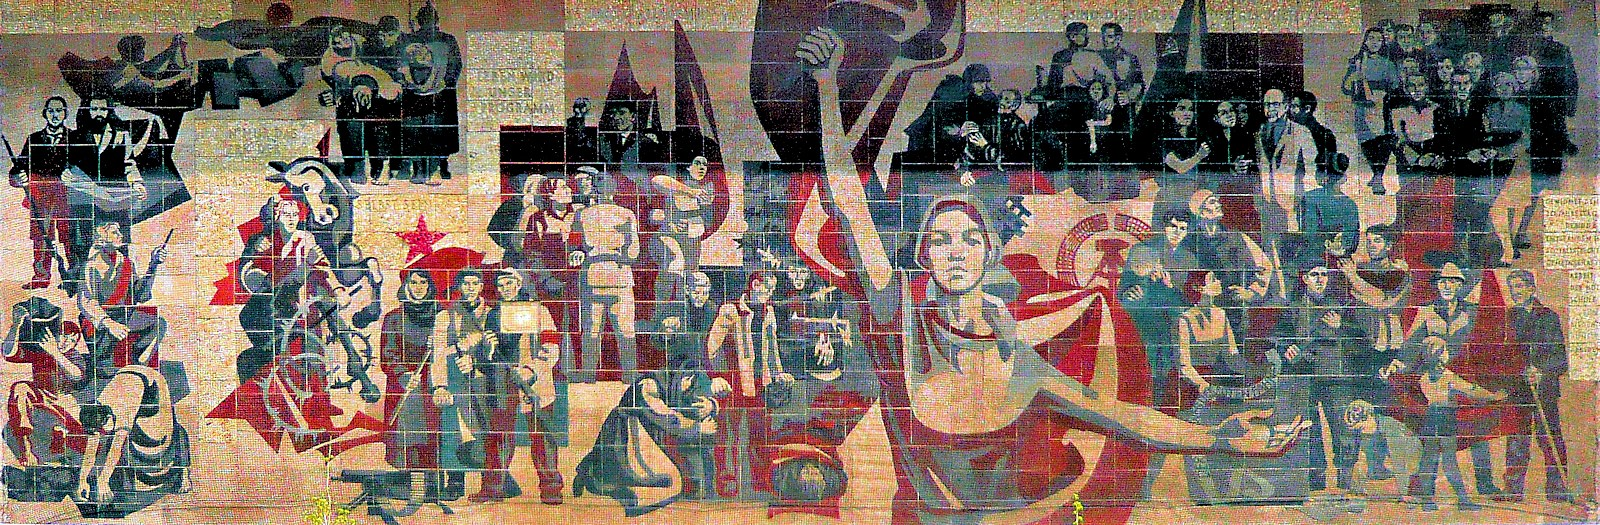 00 Gerhard Bondzin. The Path of the Red Banner. 1969. Dresden DDR. Kulturpalast mural